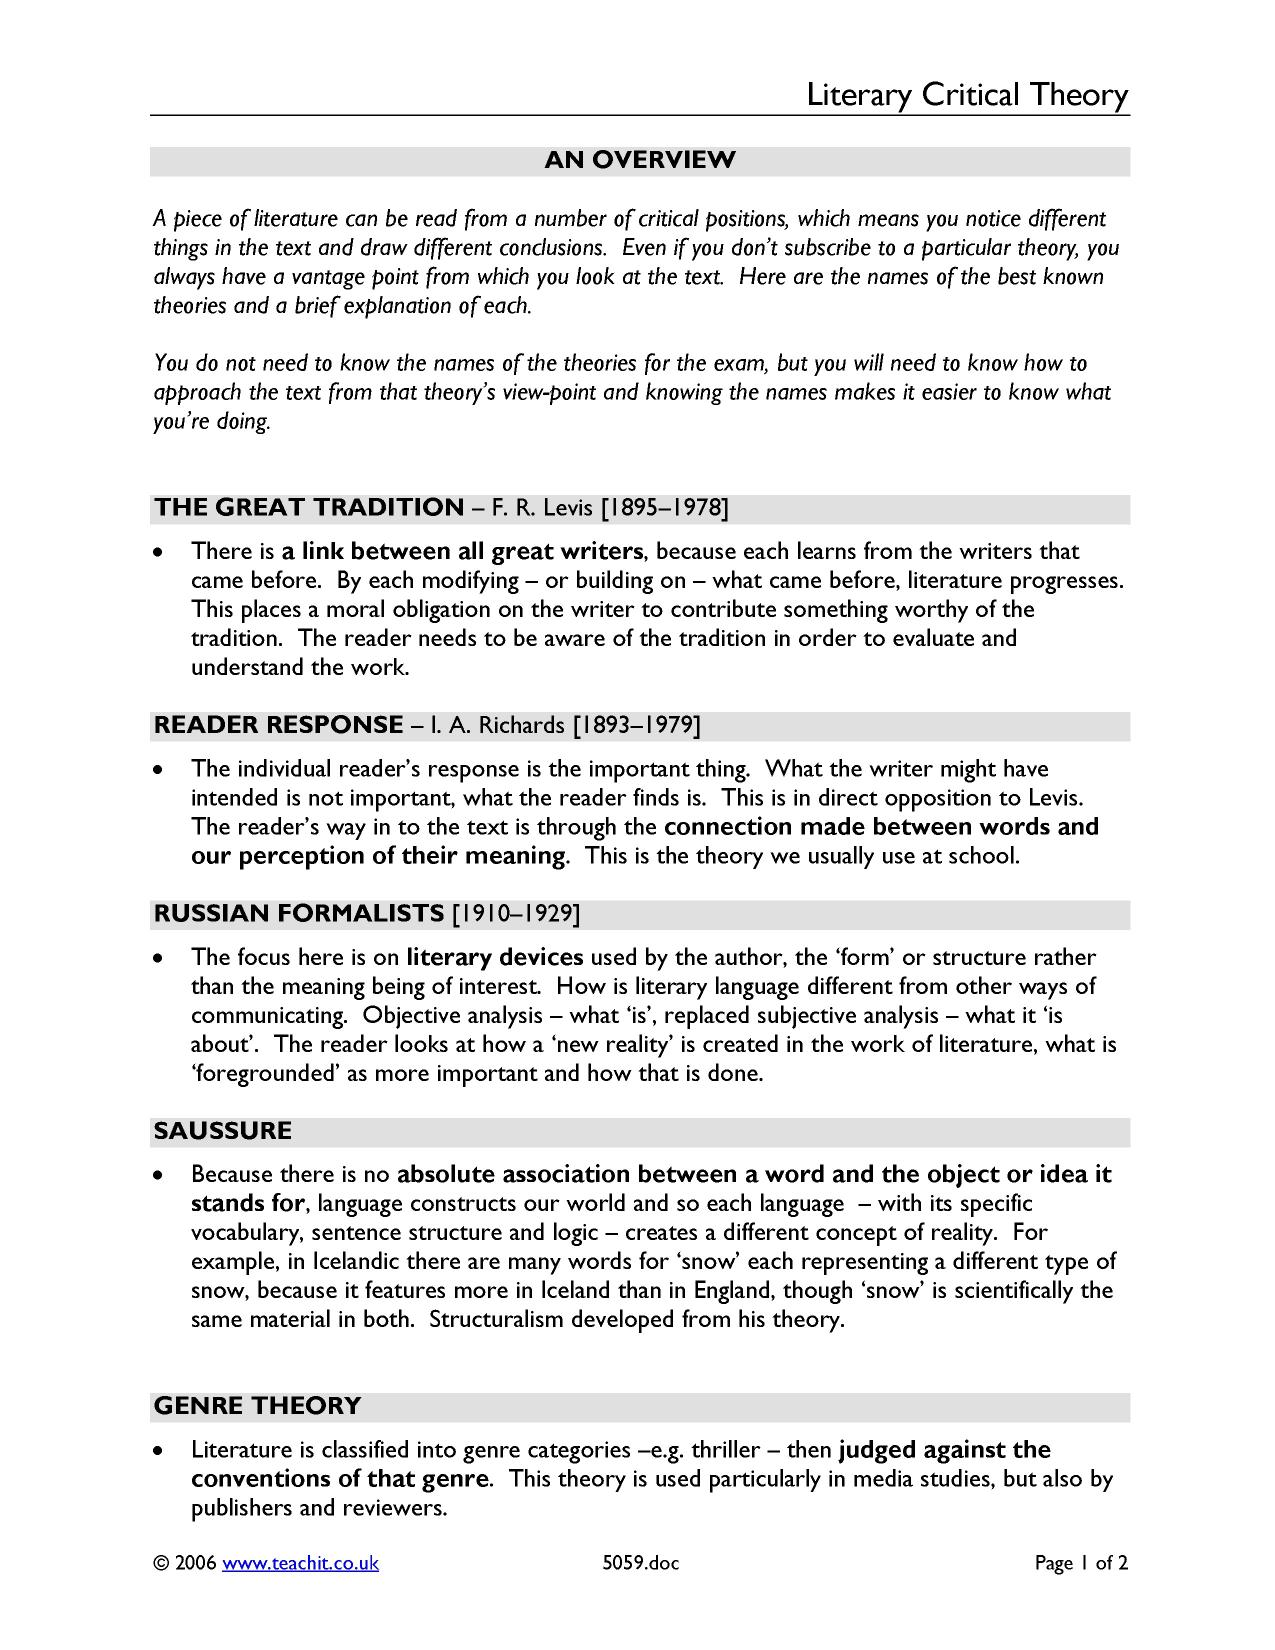 critique of article on adlerian theory essay Tent and scattered across diverse fields of inquiry, such as adlerian psychology management, enhancing student performance, marriage and family therapy ner's confidence in the other partner's ability to succeed this article's review of the literature on encouragement will focus mainly on language-based expres.